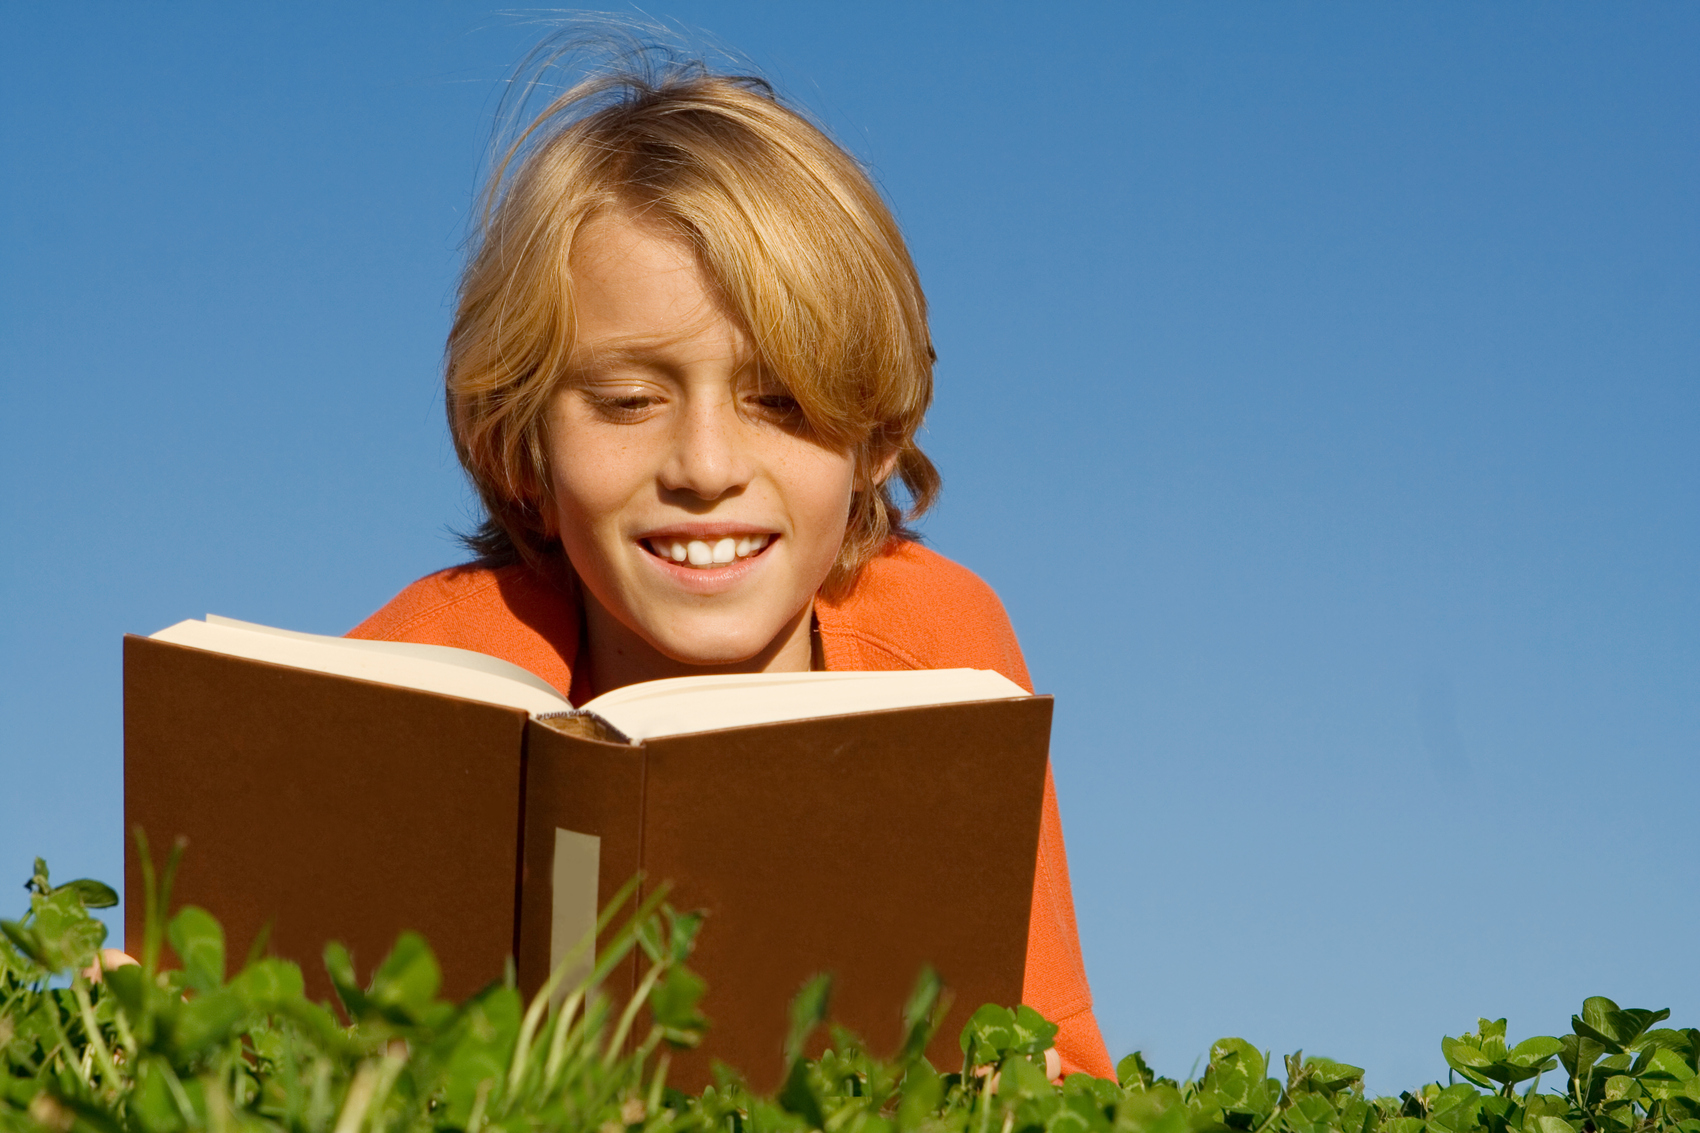 should my child study during the summer holidays?